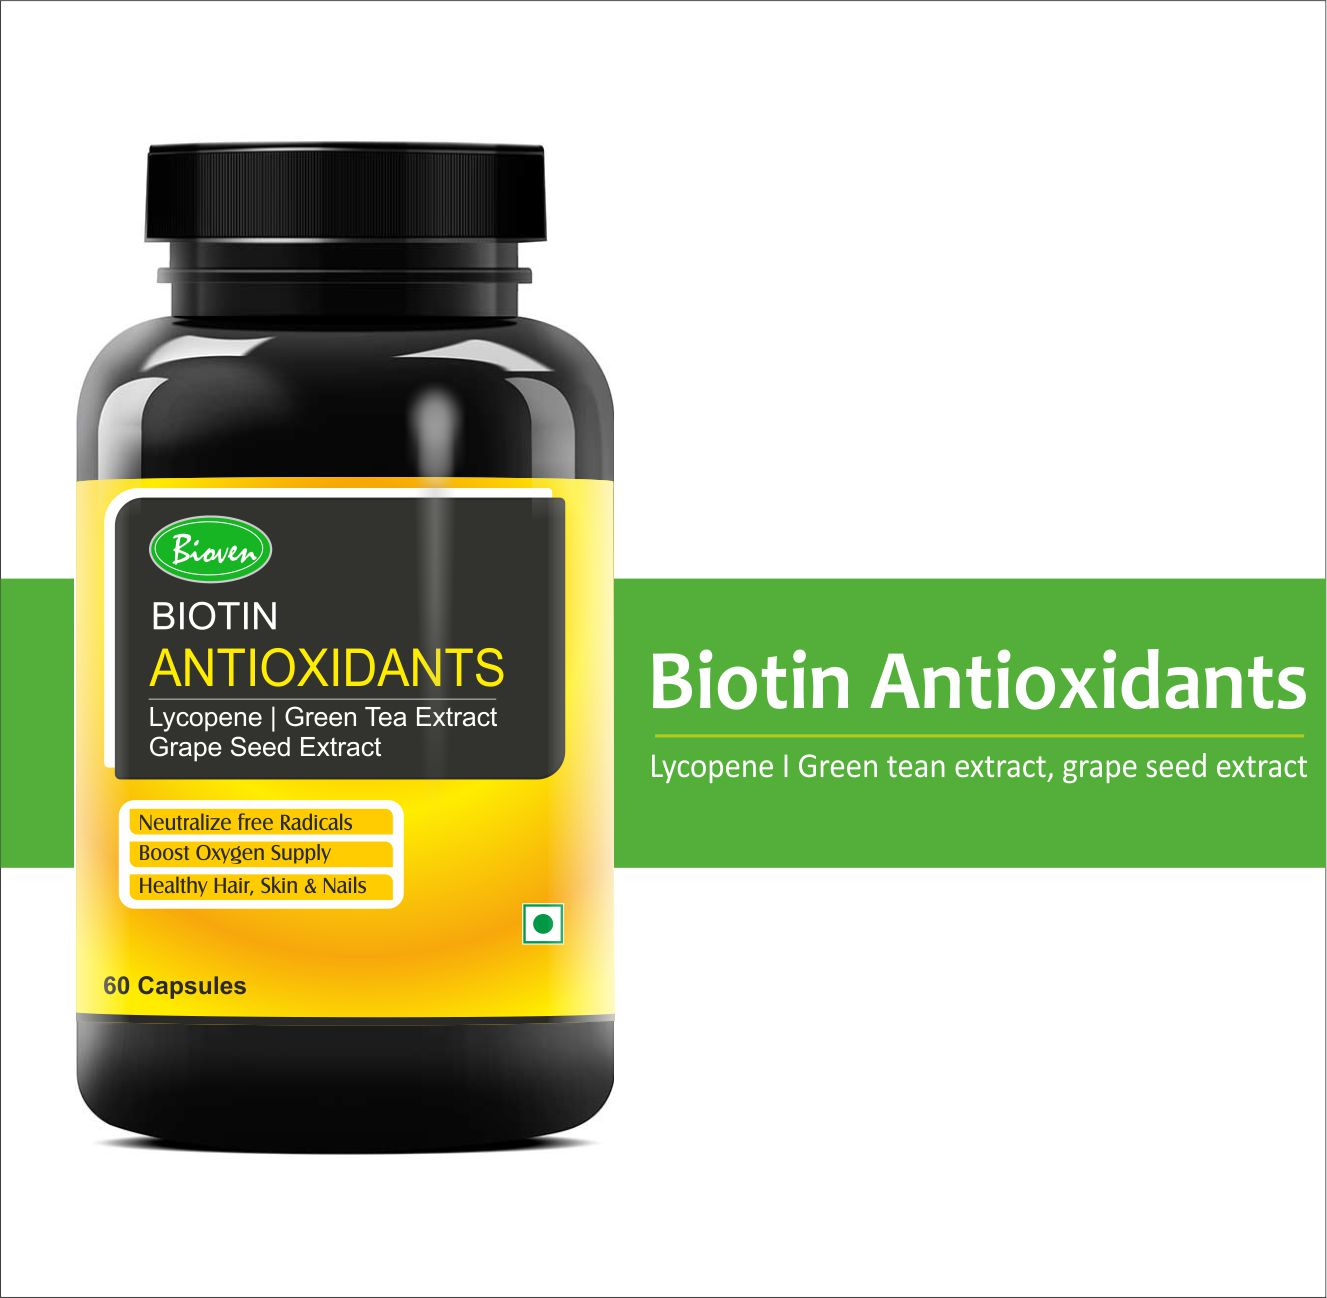 Biotin Antioxidants Support the Health of Skin and Hair, 60 capsules